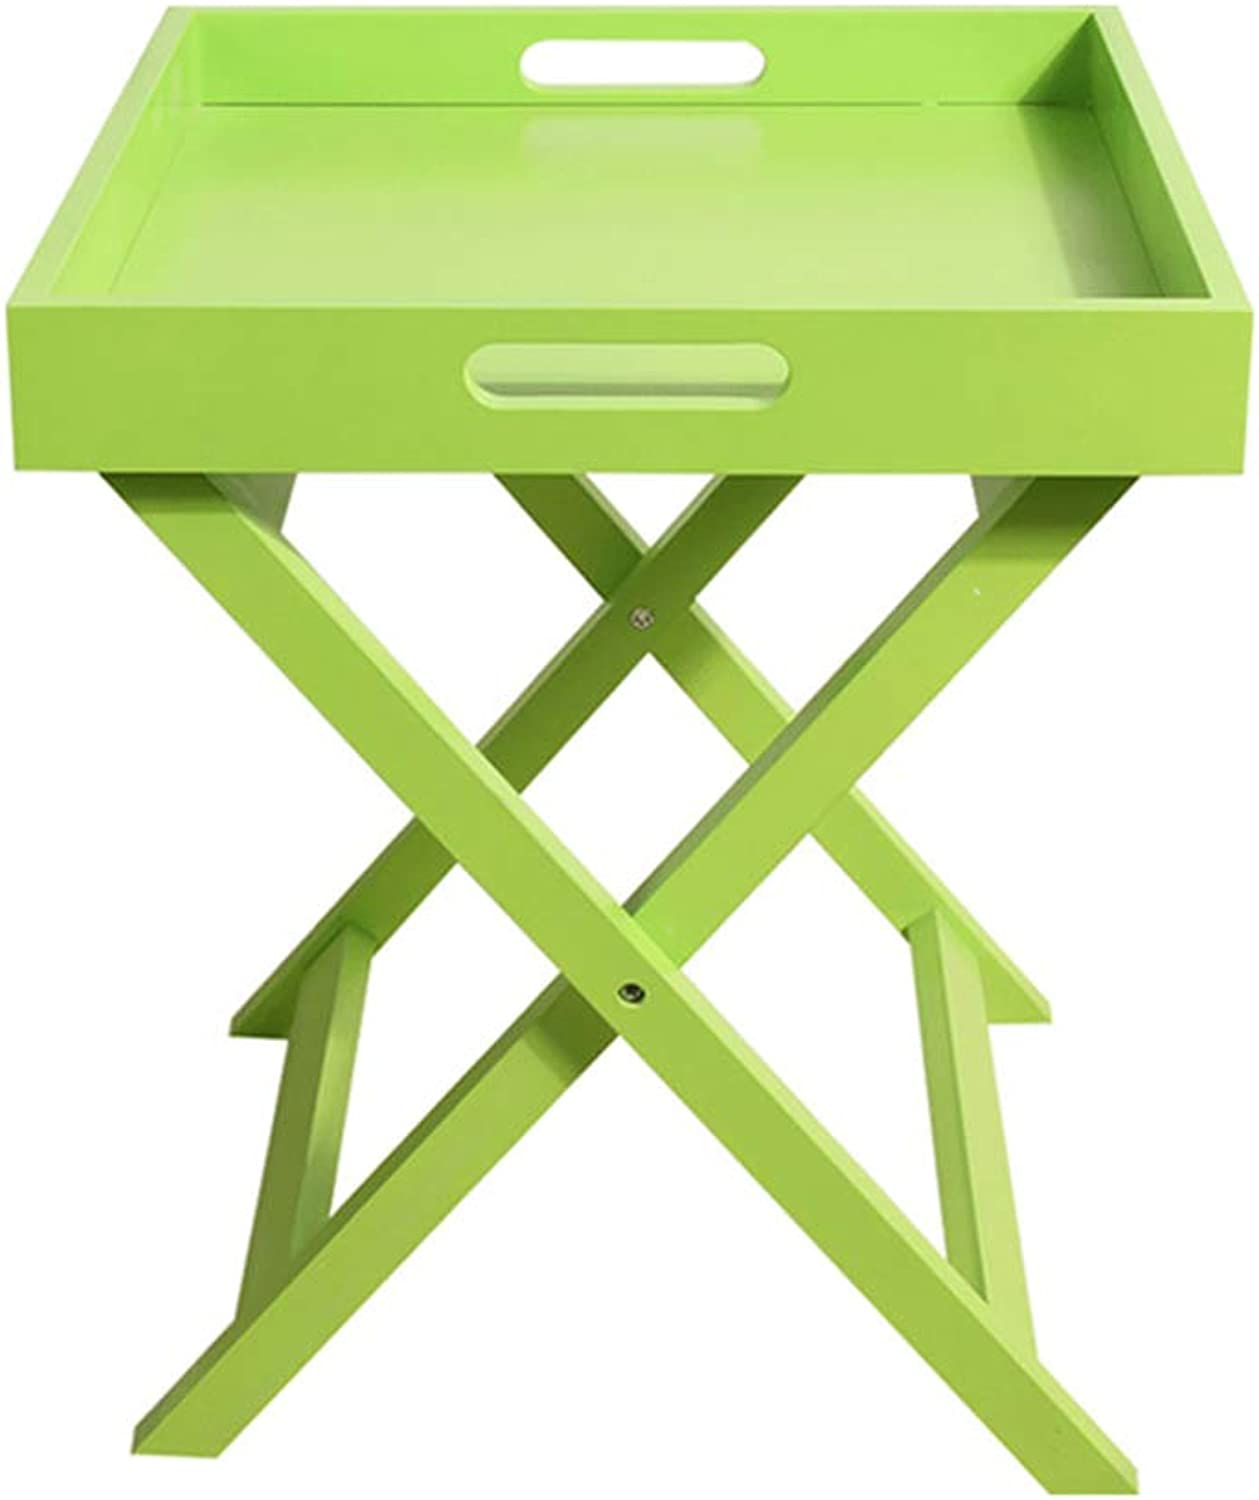 ZH Foldable Table Sofa Side Table Mini Mobile Small Coffee Table Coffee Table Bedside Folding Table, 40x40x46.5cm (color   Green)